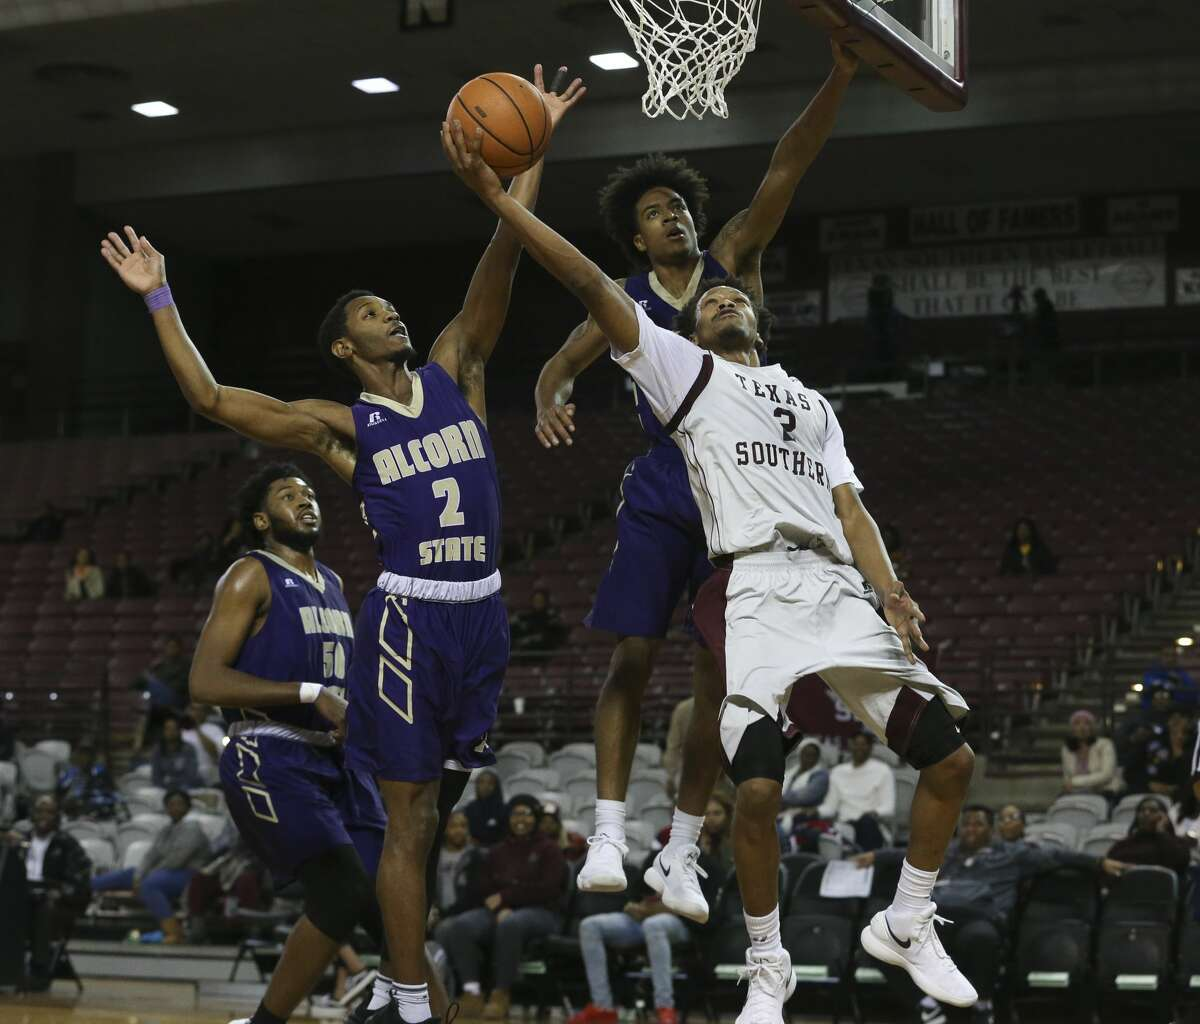 Texas Southern Tigers guard Derrick Bruce (2) goes for the basket while Alcorn State Braves players A.J. Mosby (2) and Troymain Crosby (23) is trying to stop him during the second half of a Southwestern Athletic Conference game at Health & Physical Education Arena on Wednesday, Jan. 3, 2018, in Houston. The Texas Southern Tigers defeated the Alcorn State Braves 85-70. ( Yi-Chin Lee / Houston Chronicle )